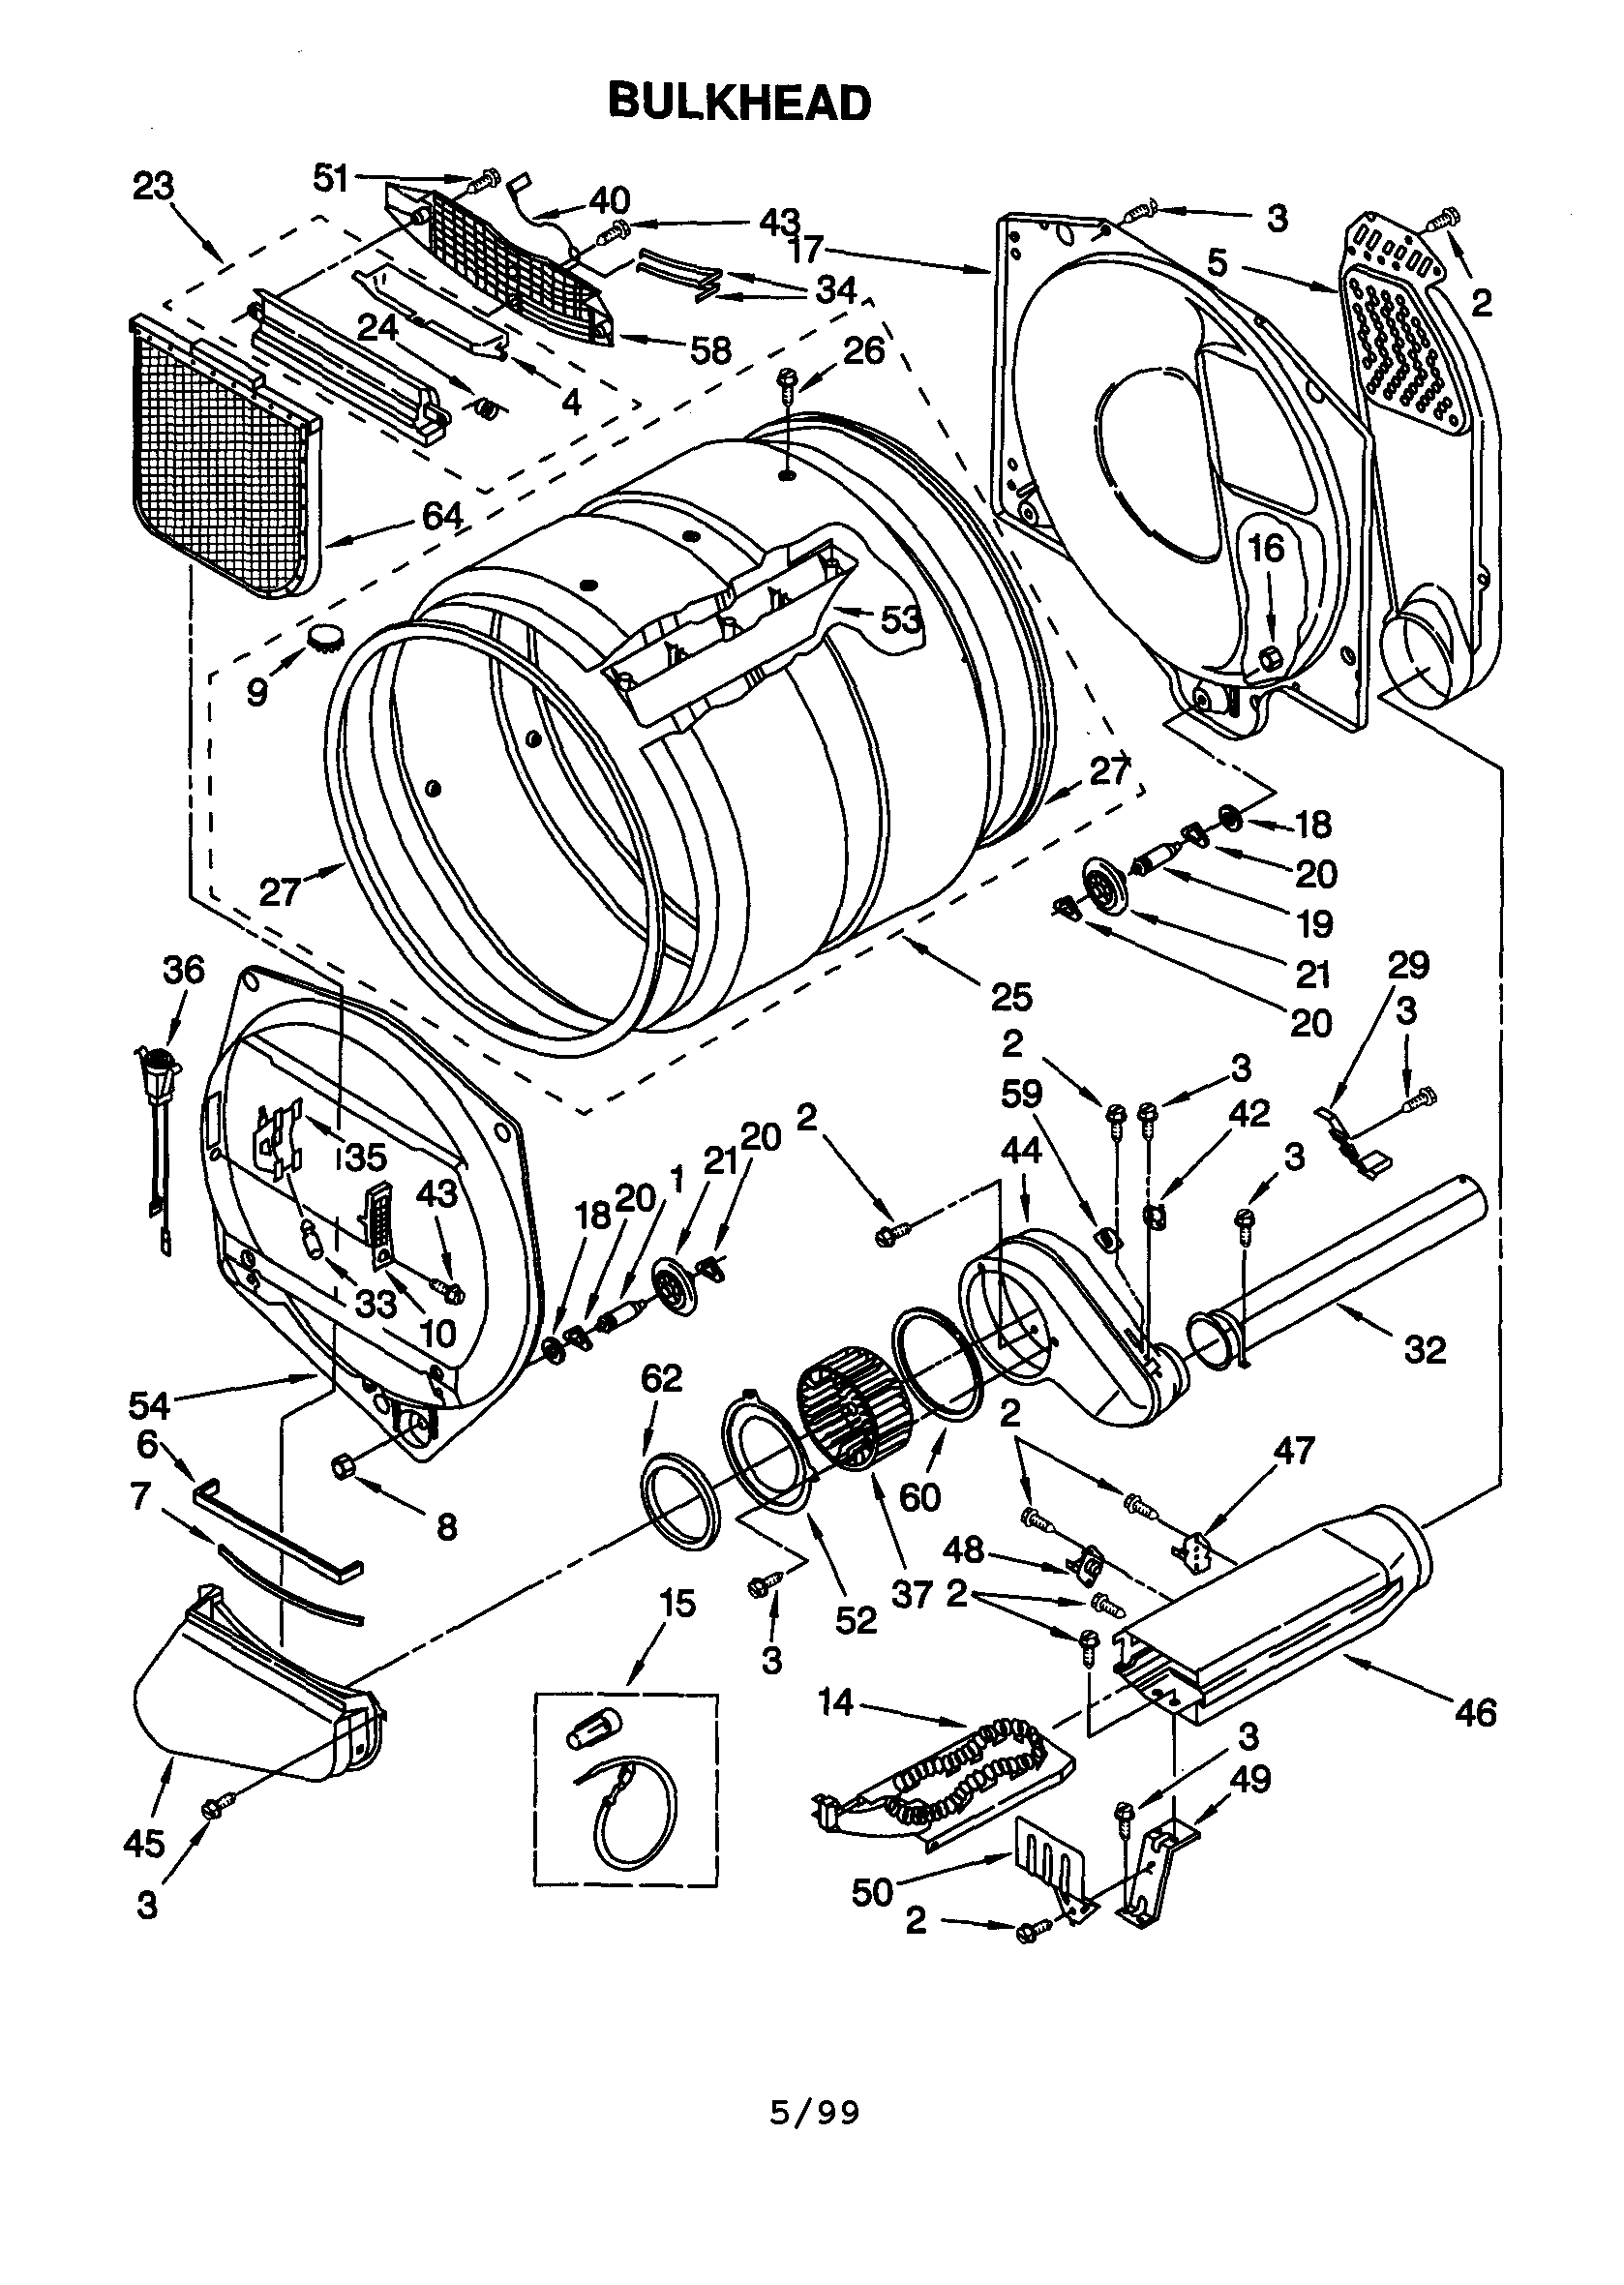 small resolution of kenmore dryer diagram maytag dryer belt replacement diagram kenmore diagram further kenmore dryer fuse location moreover whirlpool dryer